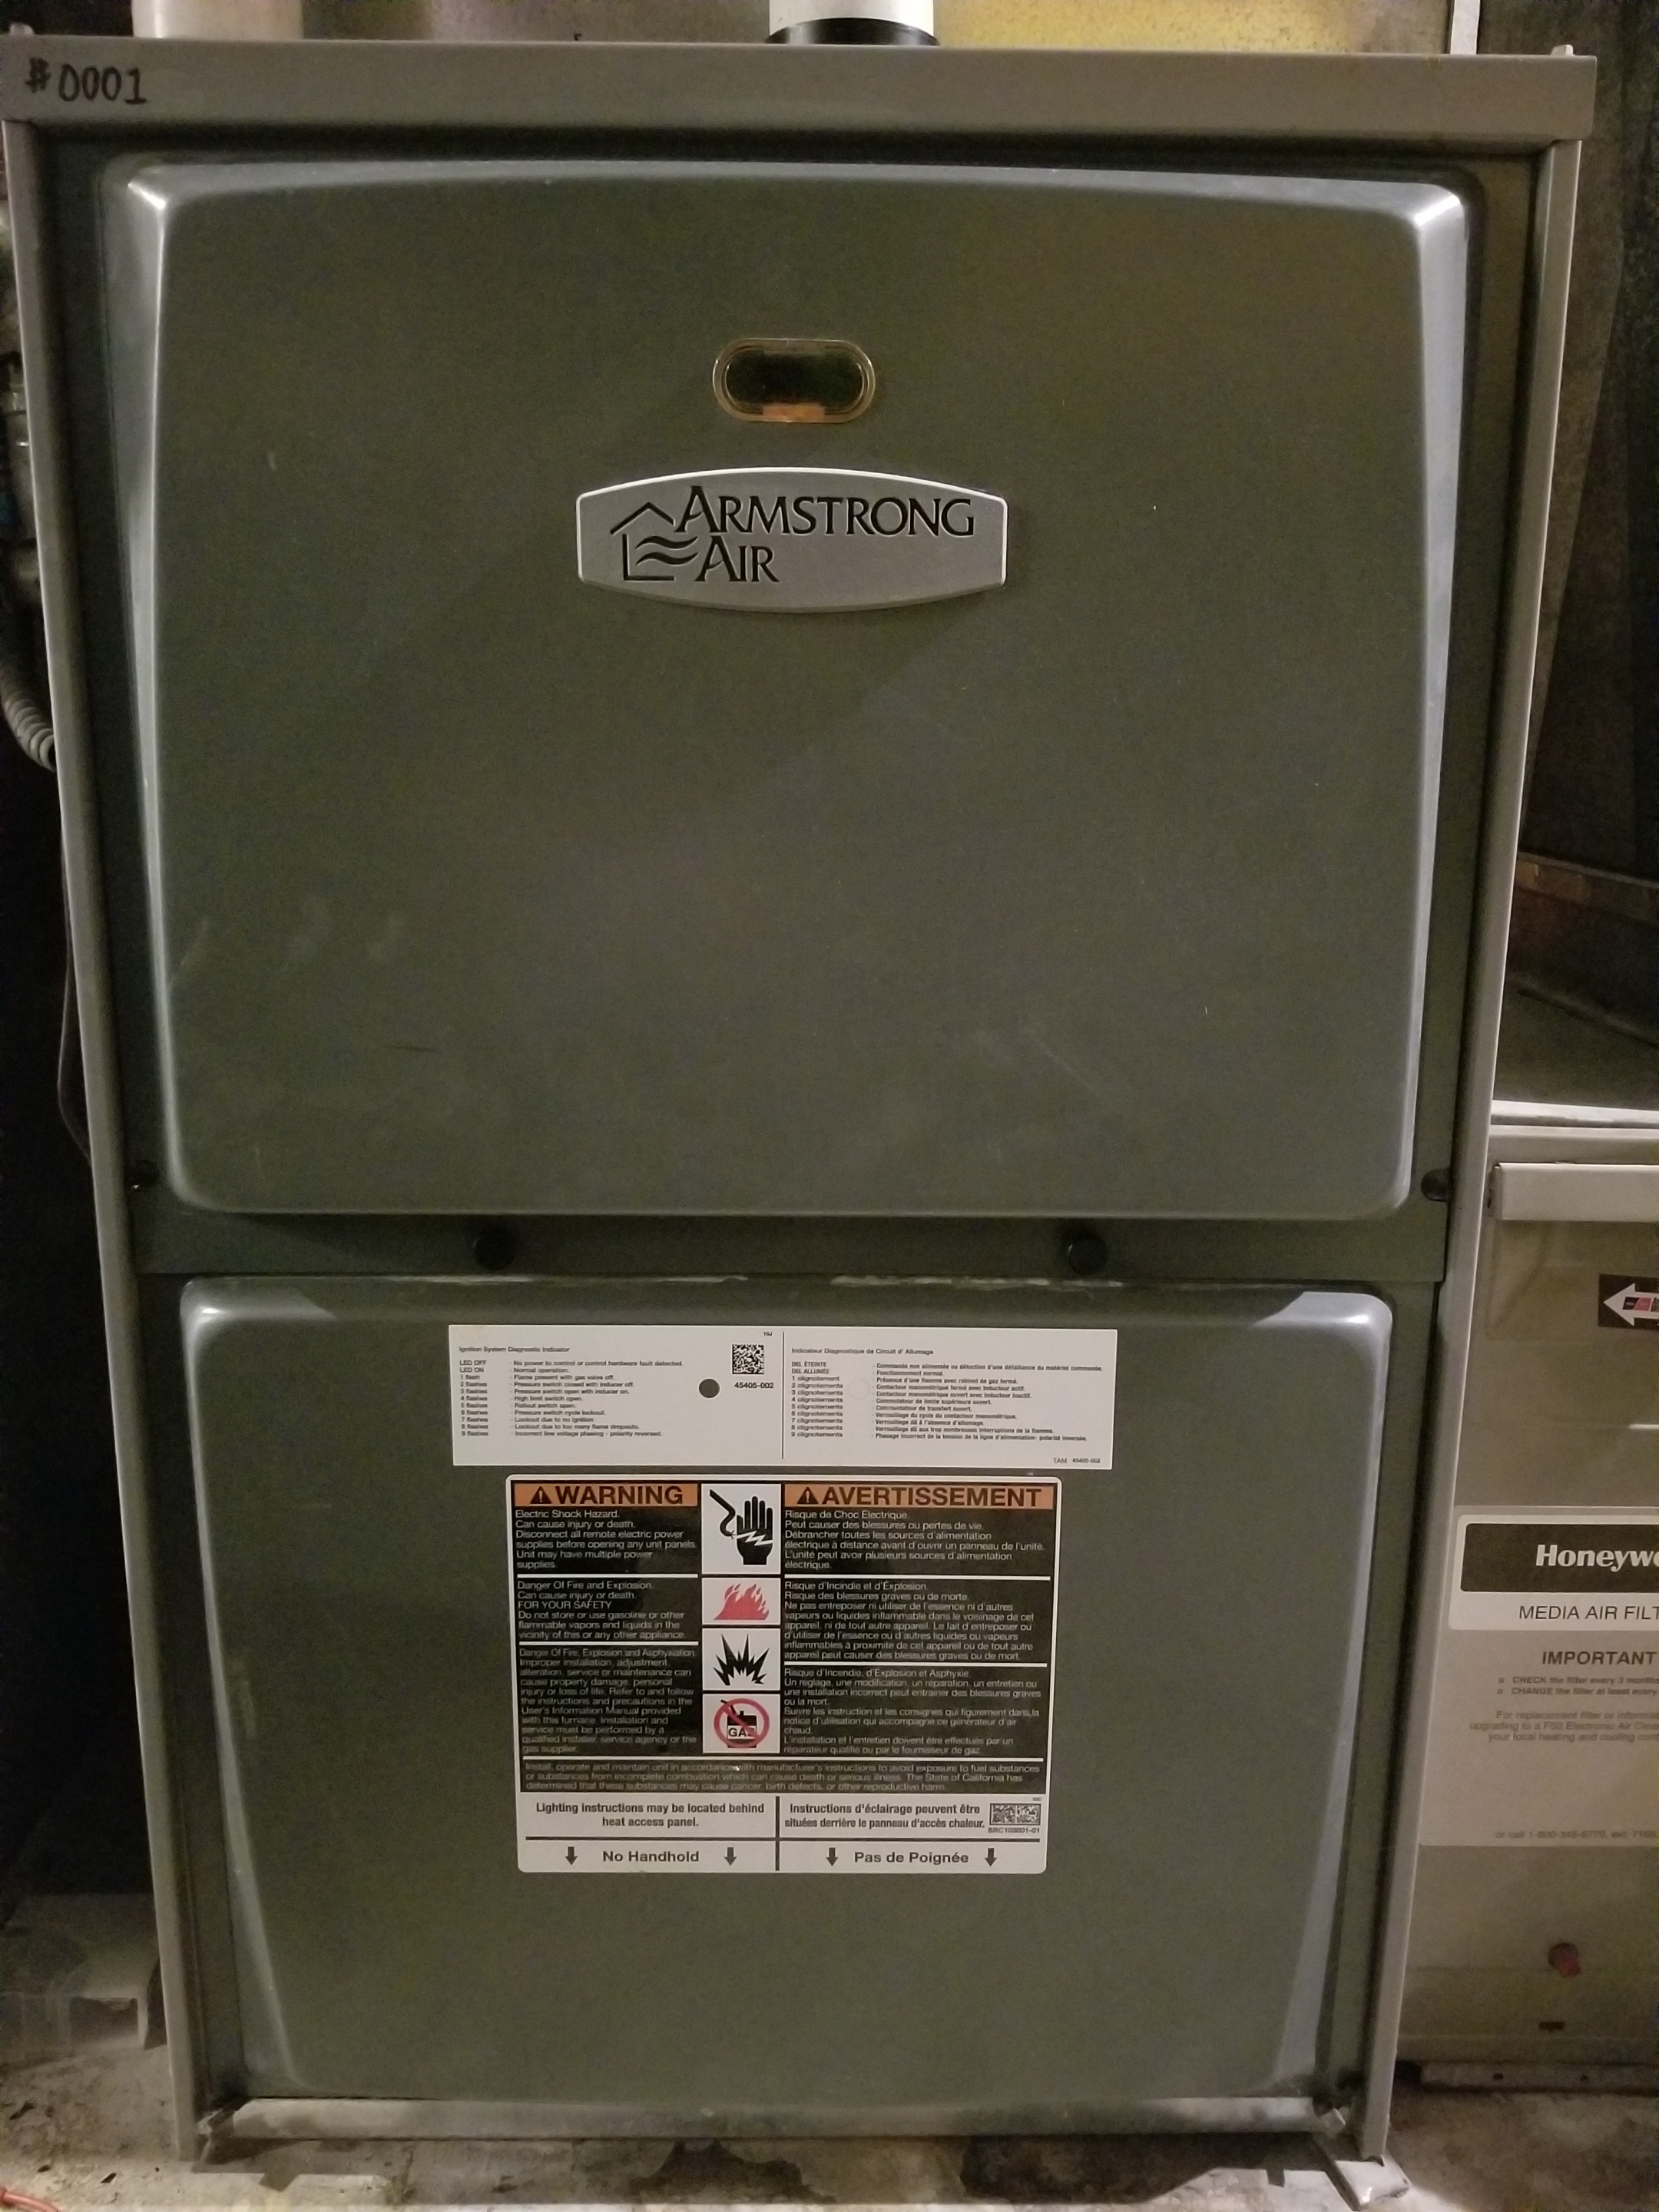 Performed annual maintenance on the Armstrong Air, Trane & American Standard furnaces also on the Aprilaire humidifiers and Honeywell air cleaners. Made adjustments to improve the overall efficiency and life expectancy of the equipment.